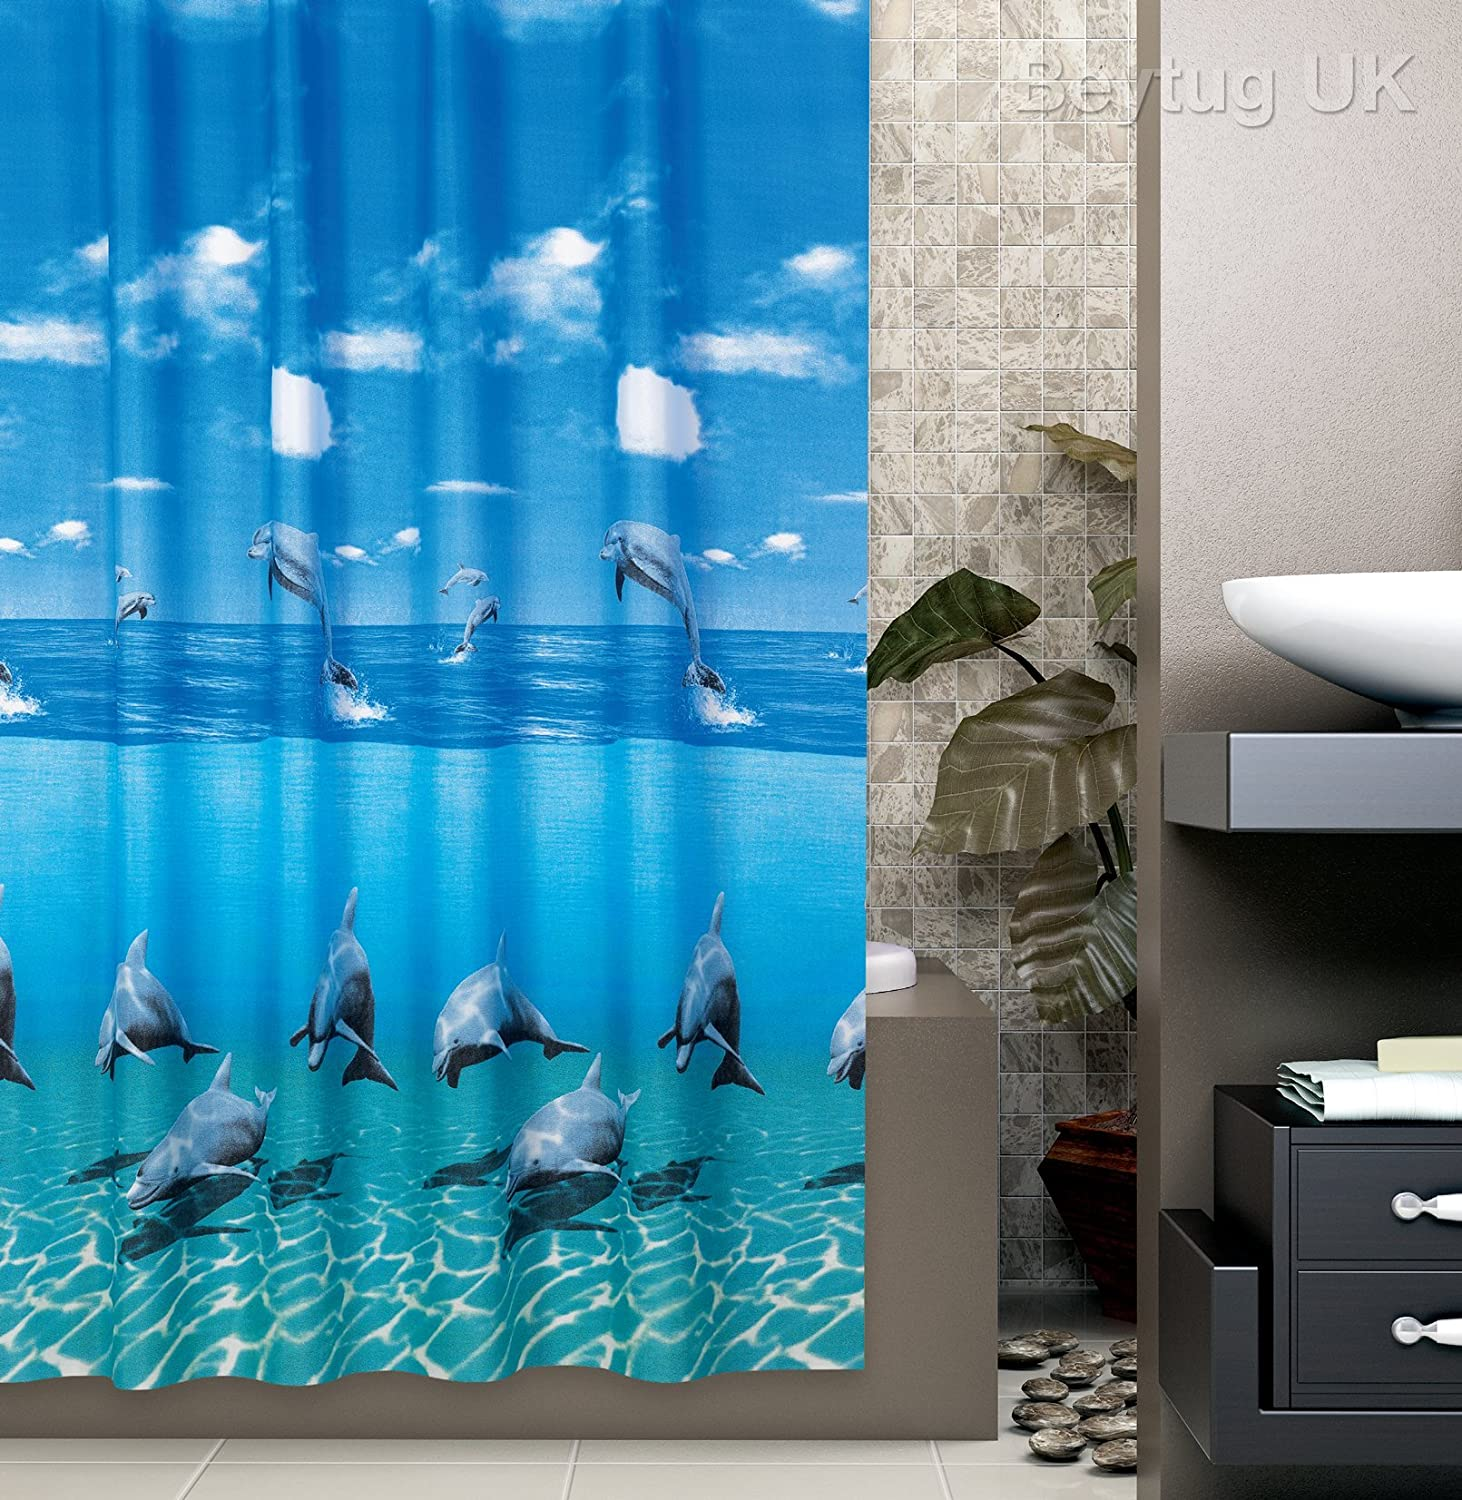 Beautiful extra long shower curtain Wide 240cm x Length 200cm rings included Dolphin by beytug W240 x L200cm